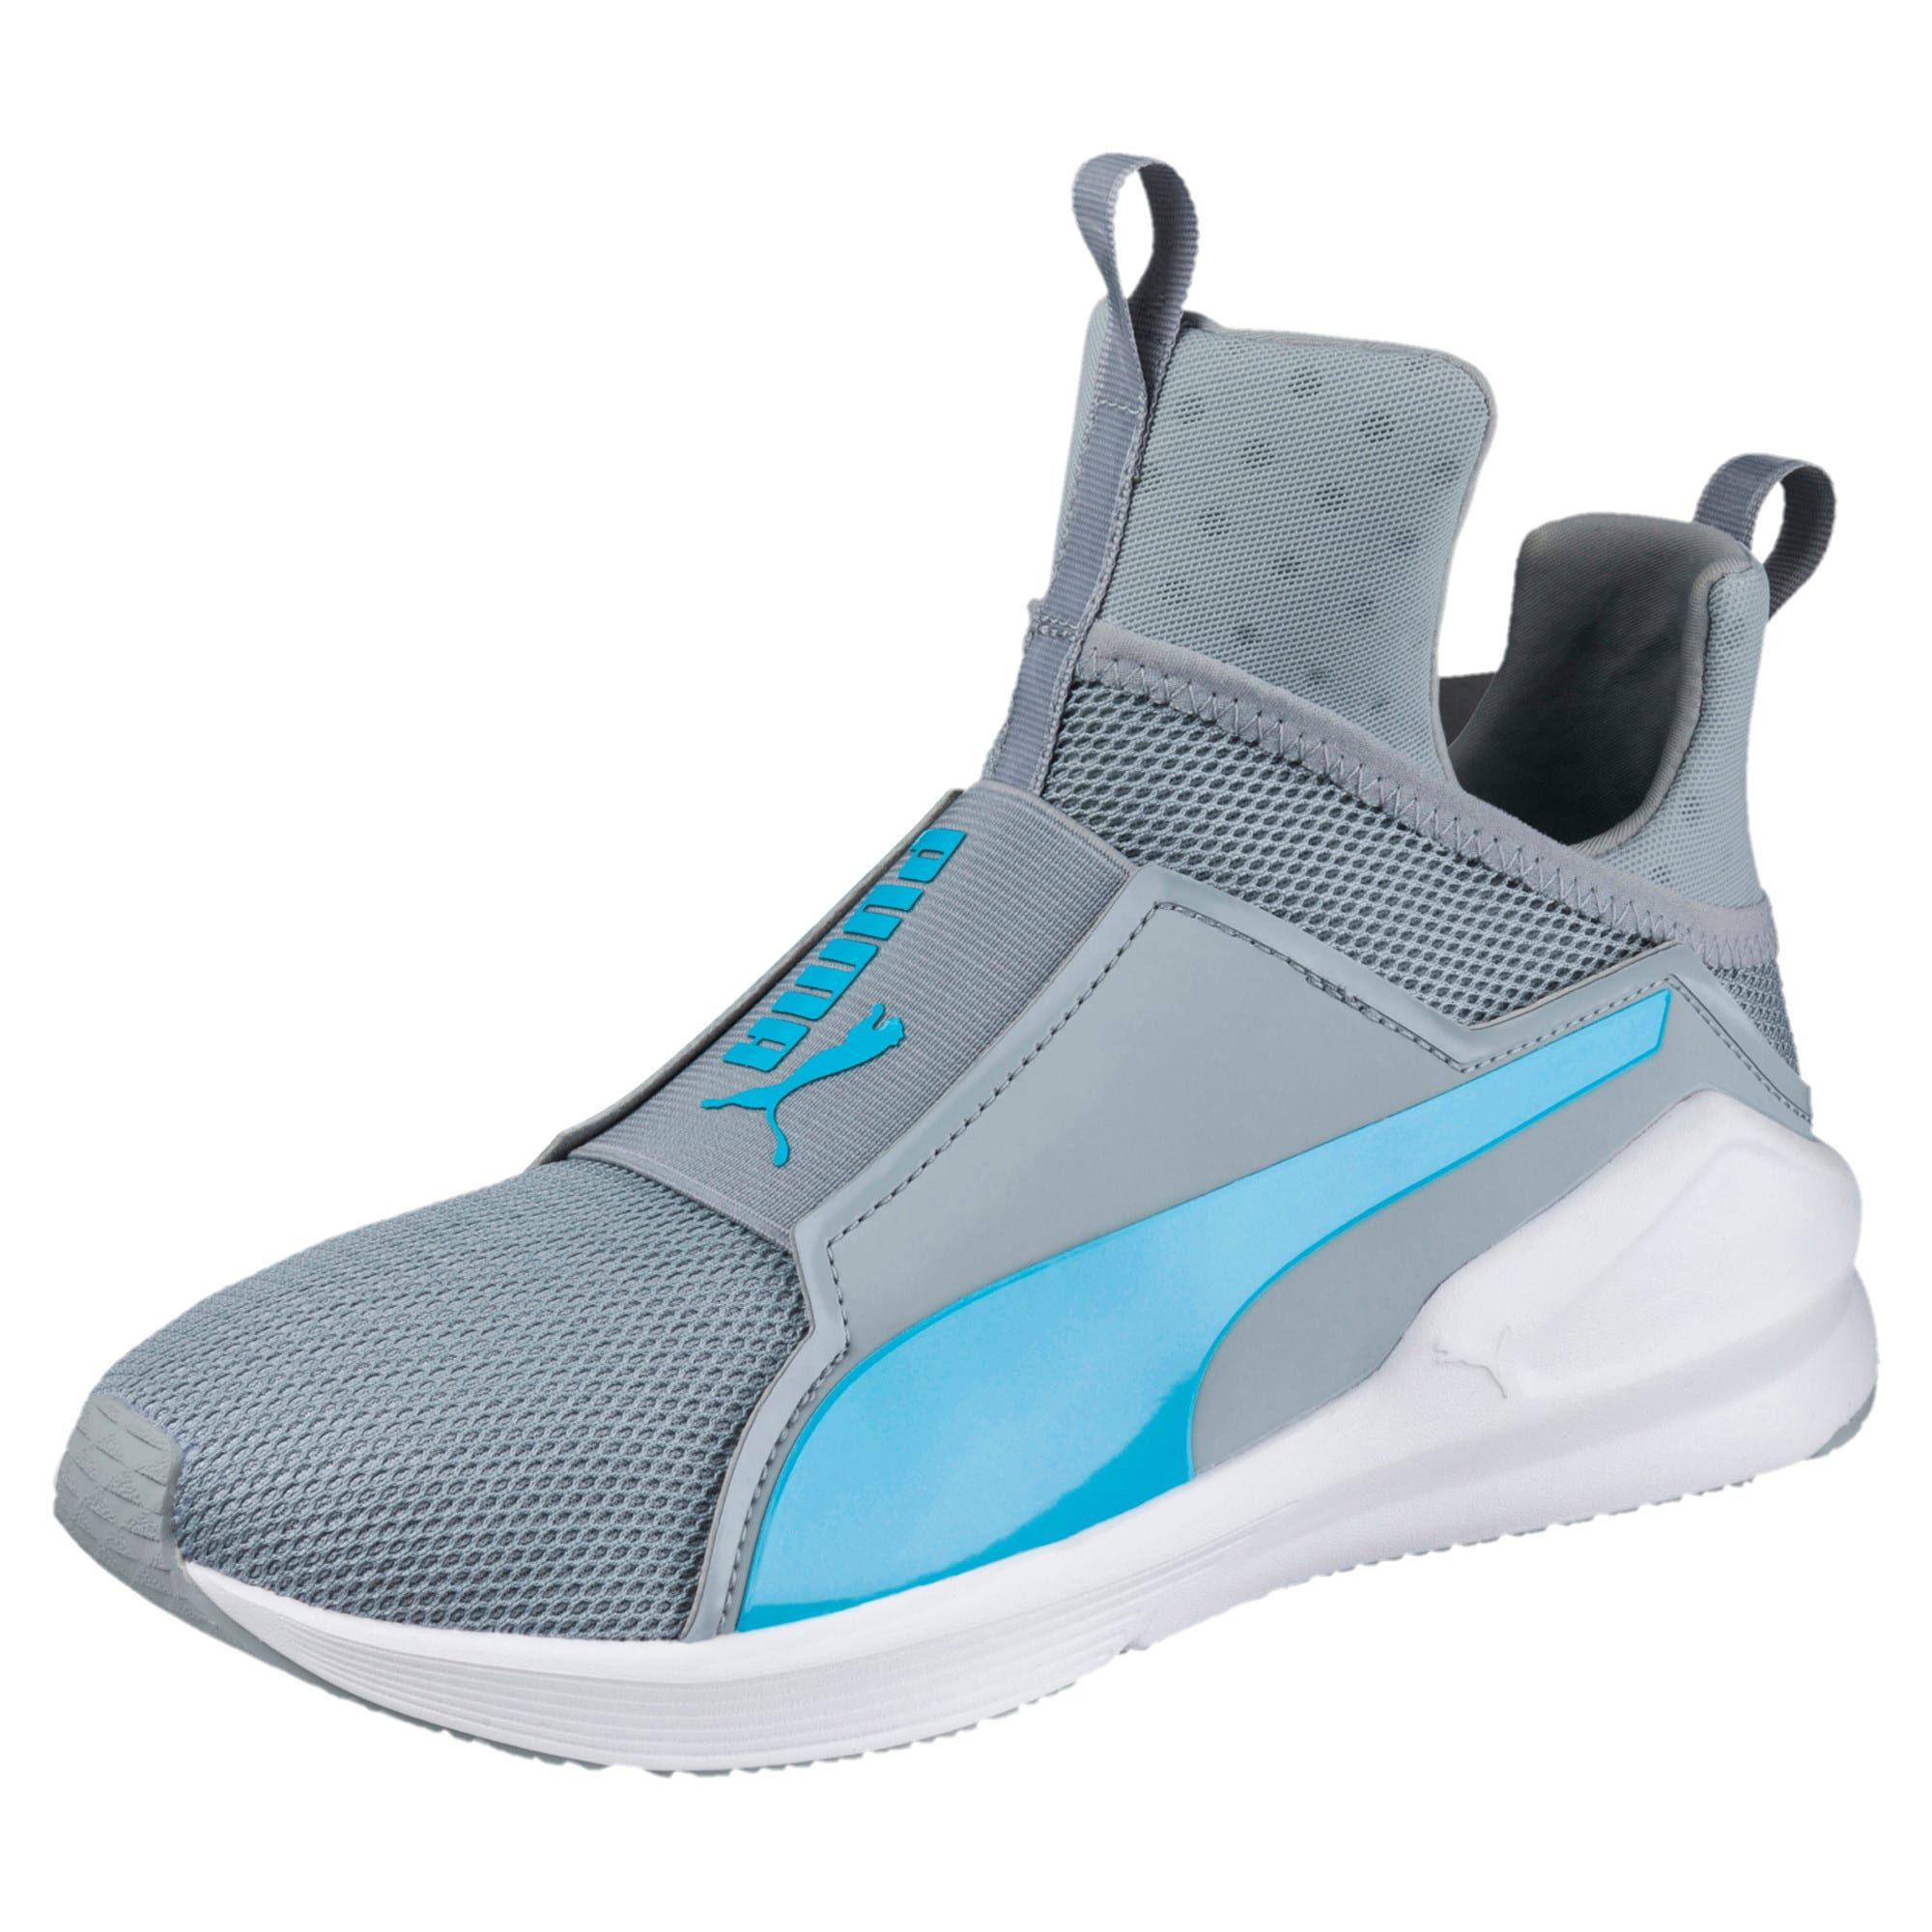 PUMA Fierce Core Training Shoes | Fashion | Chaussures